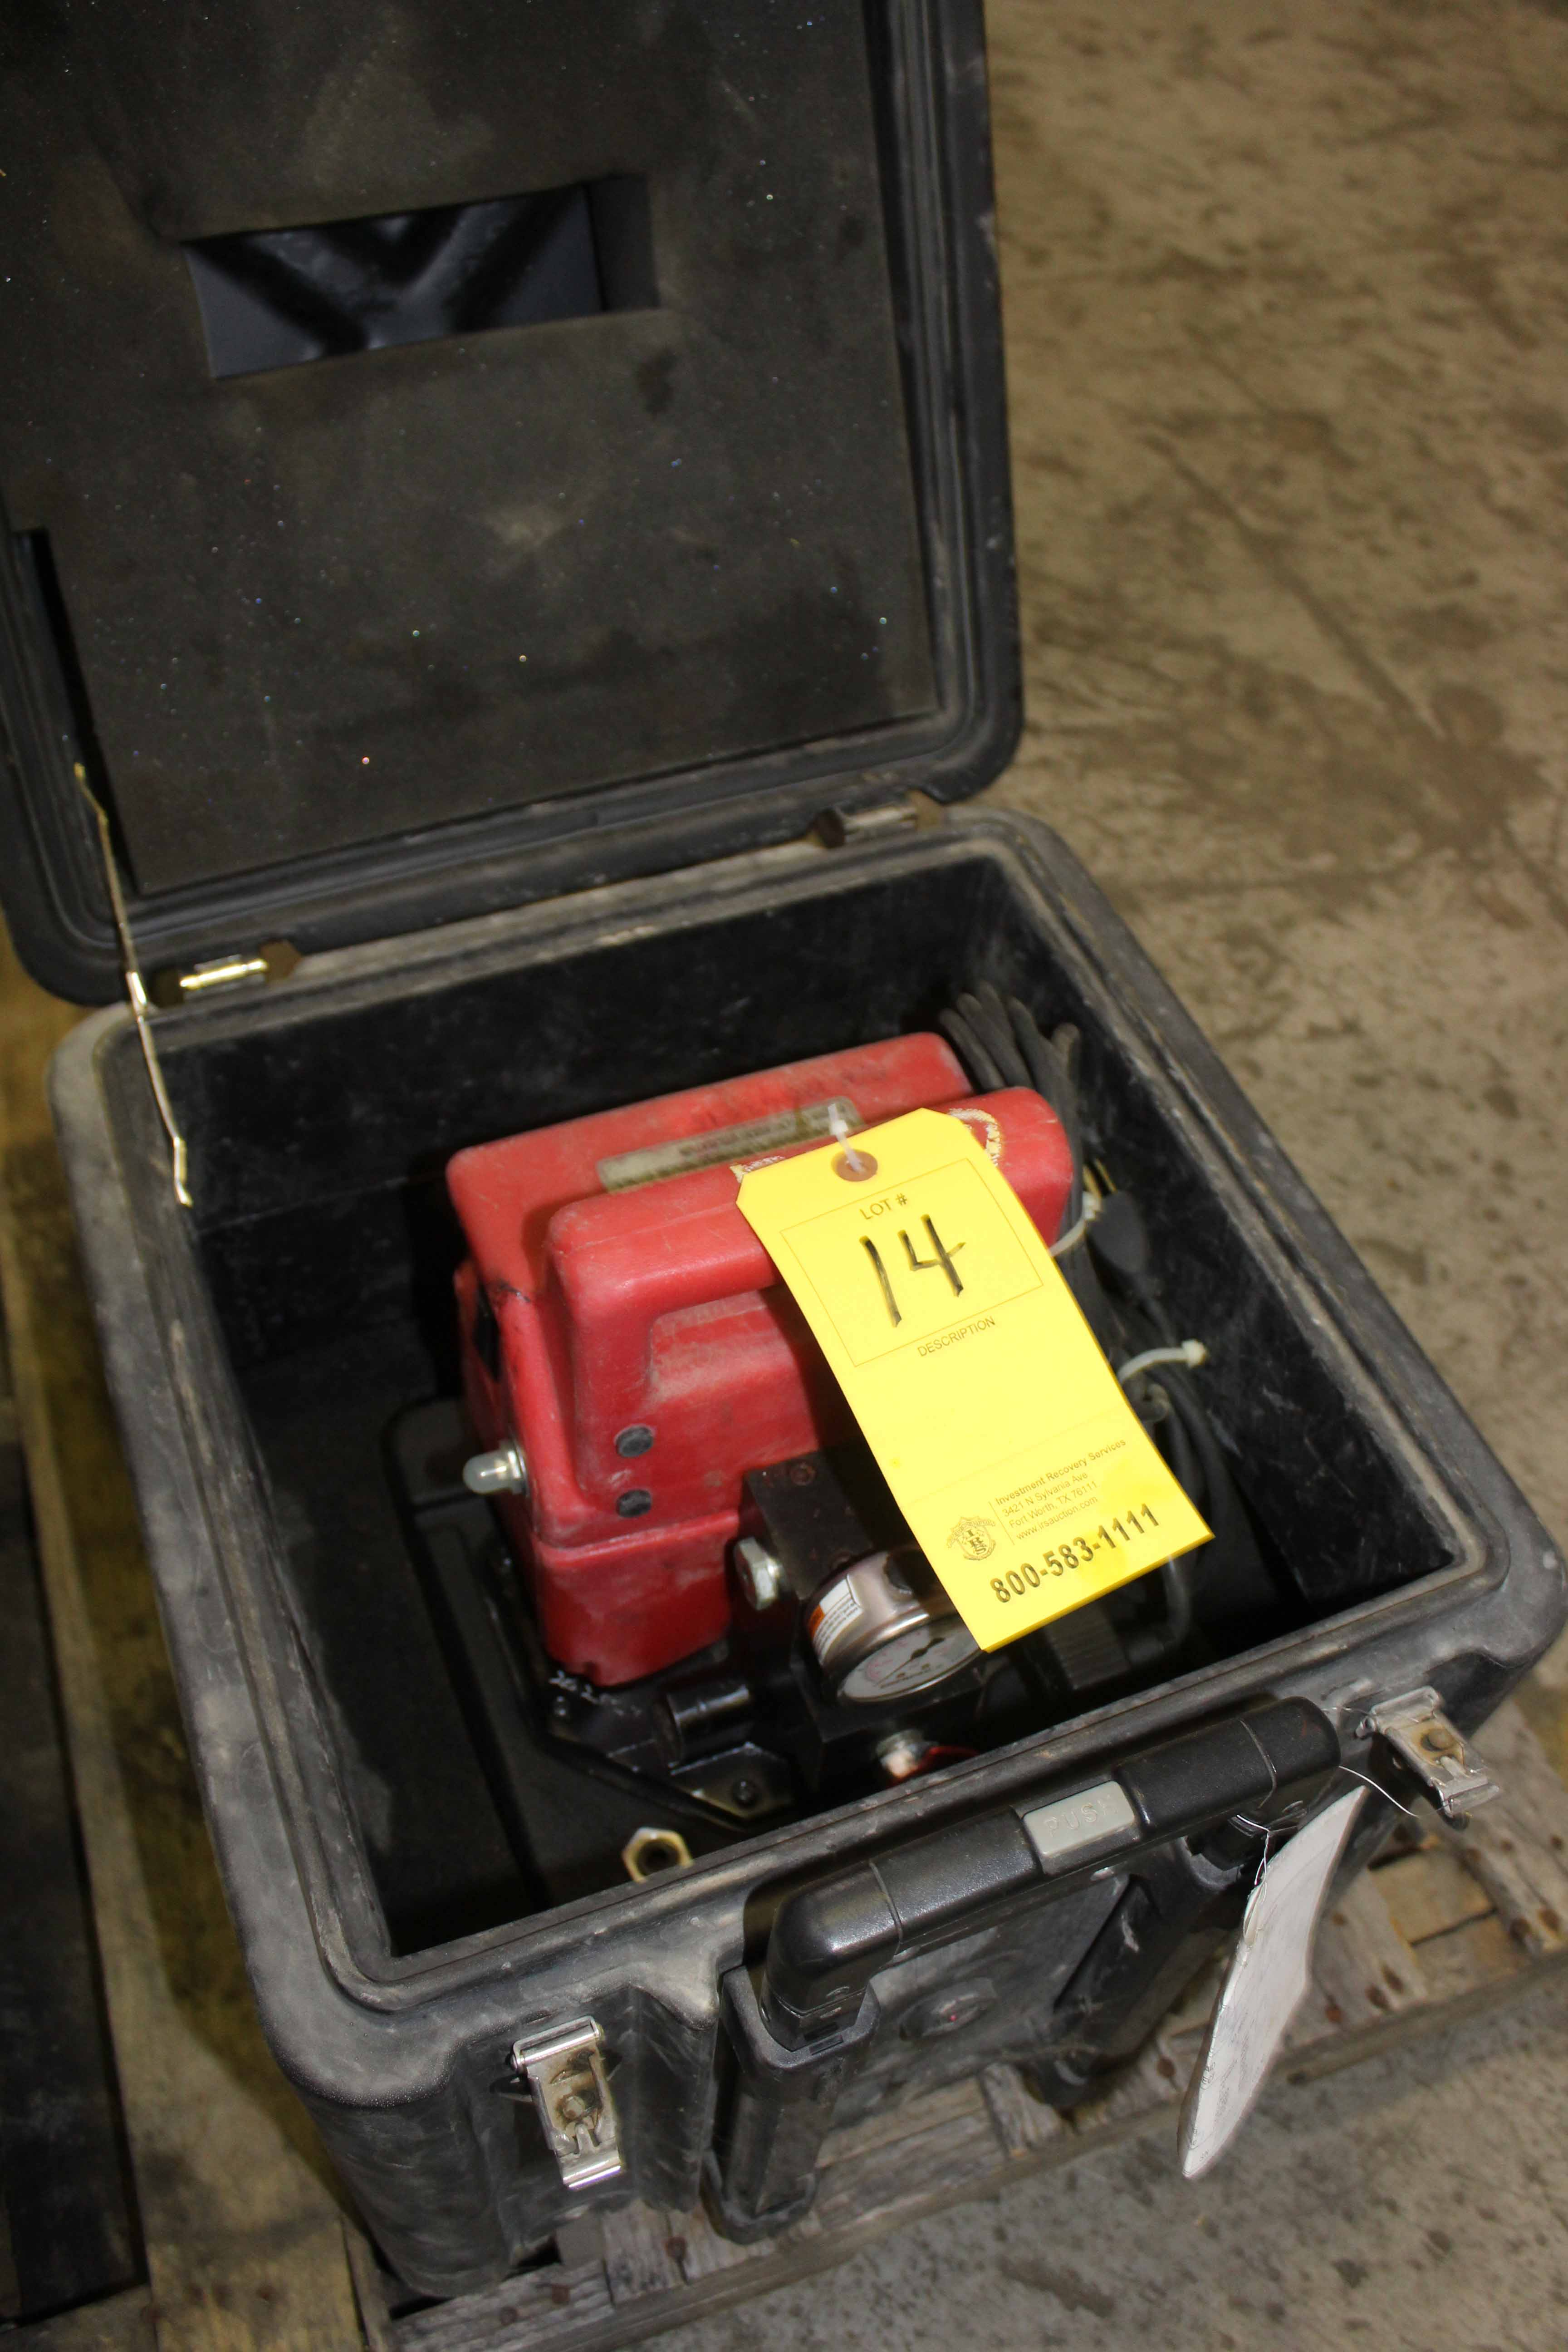 Lot 14 - PORTABLE ELECTRIC PUMP, ENERPAC MDL. L2062, 1/2 HP, w/case